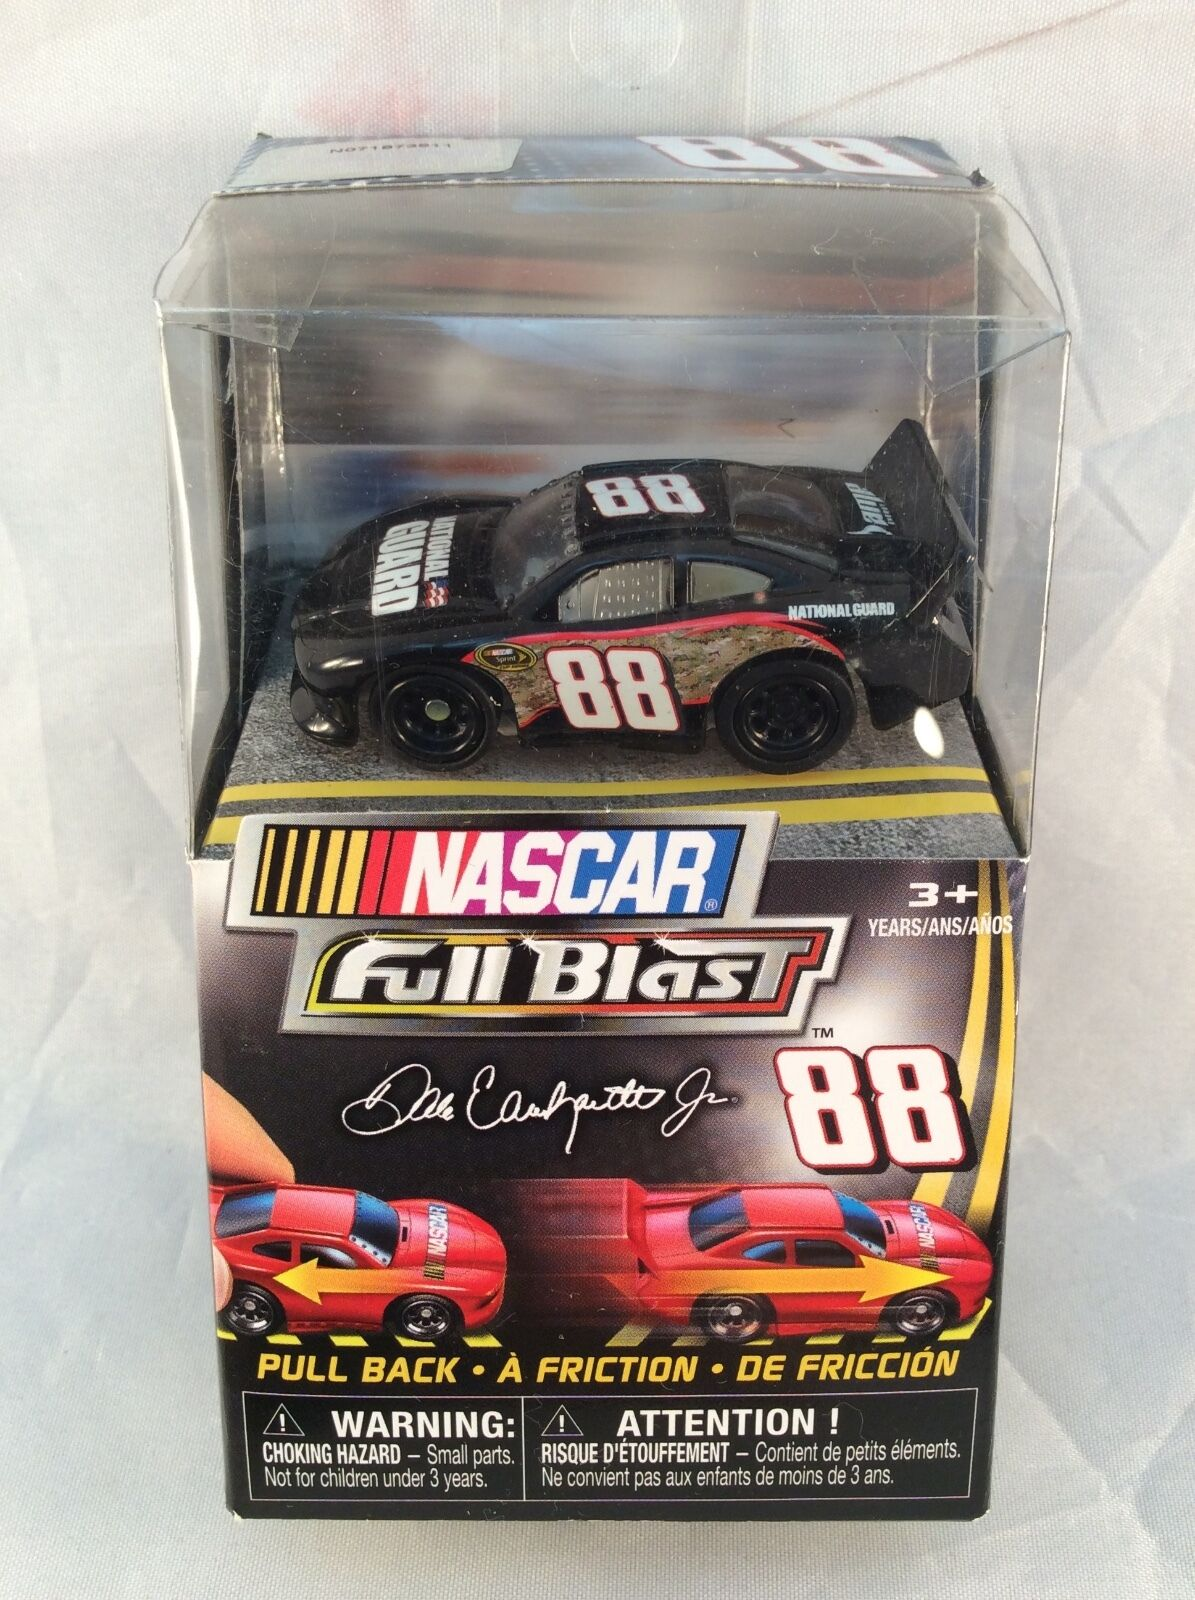 NASCAR Full Blast Dale Earnhardt Jr. Friction Car - Nation Guard Camo